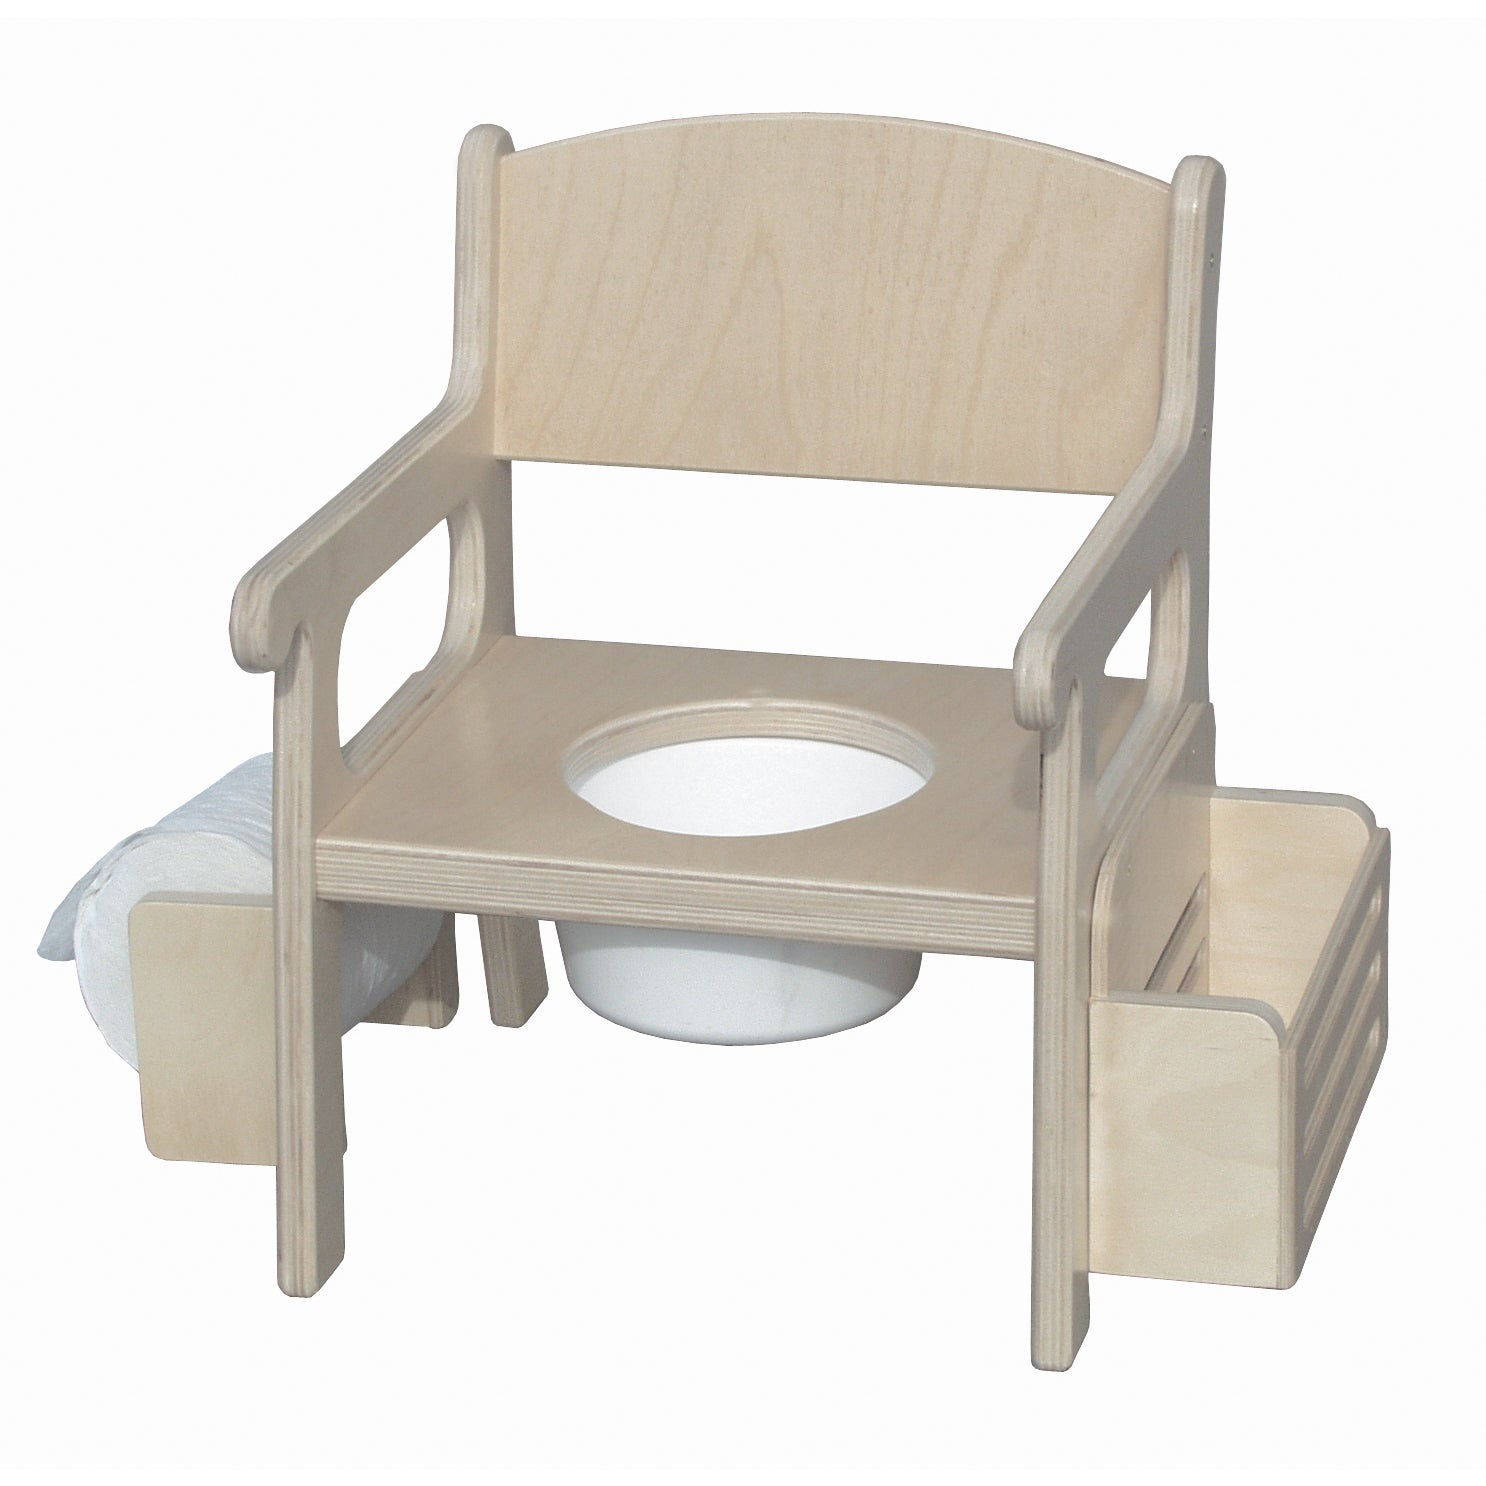 Little Colorado Potty Chair with Accessories (Unfinished), Brown birch